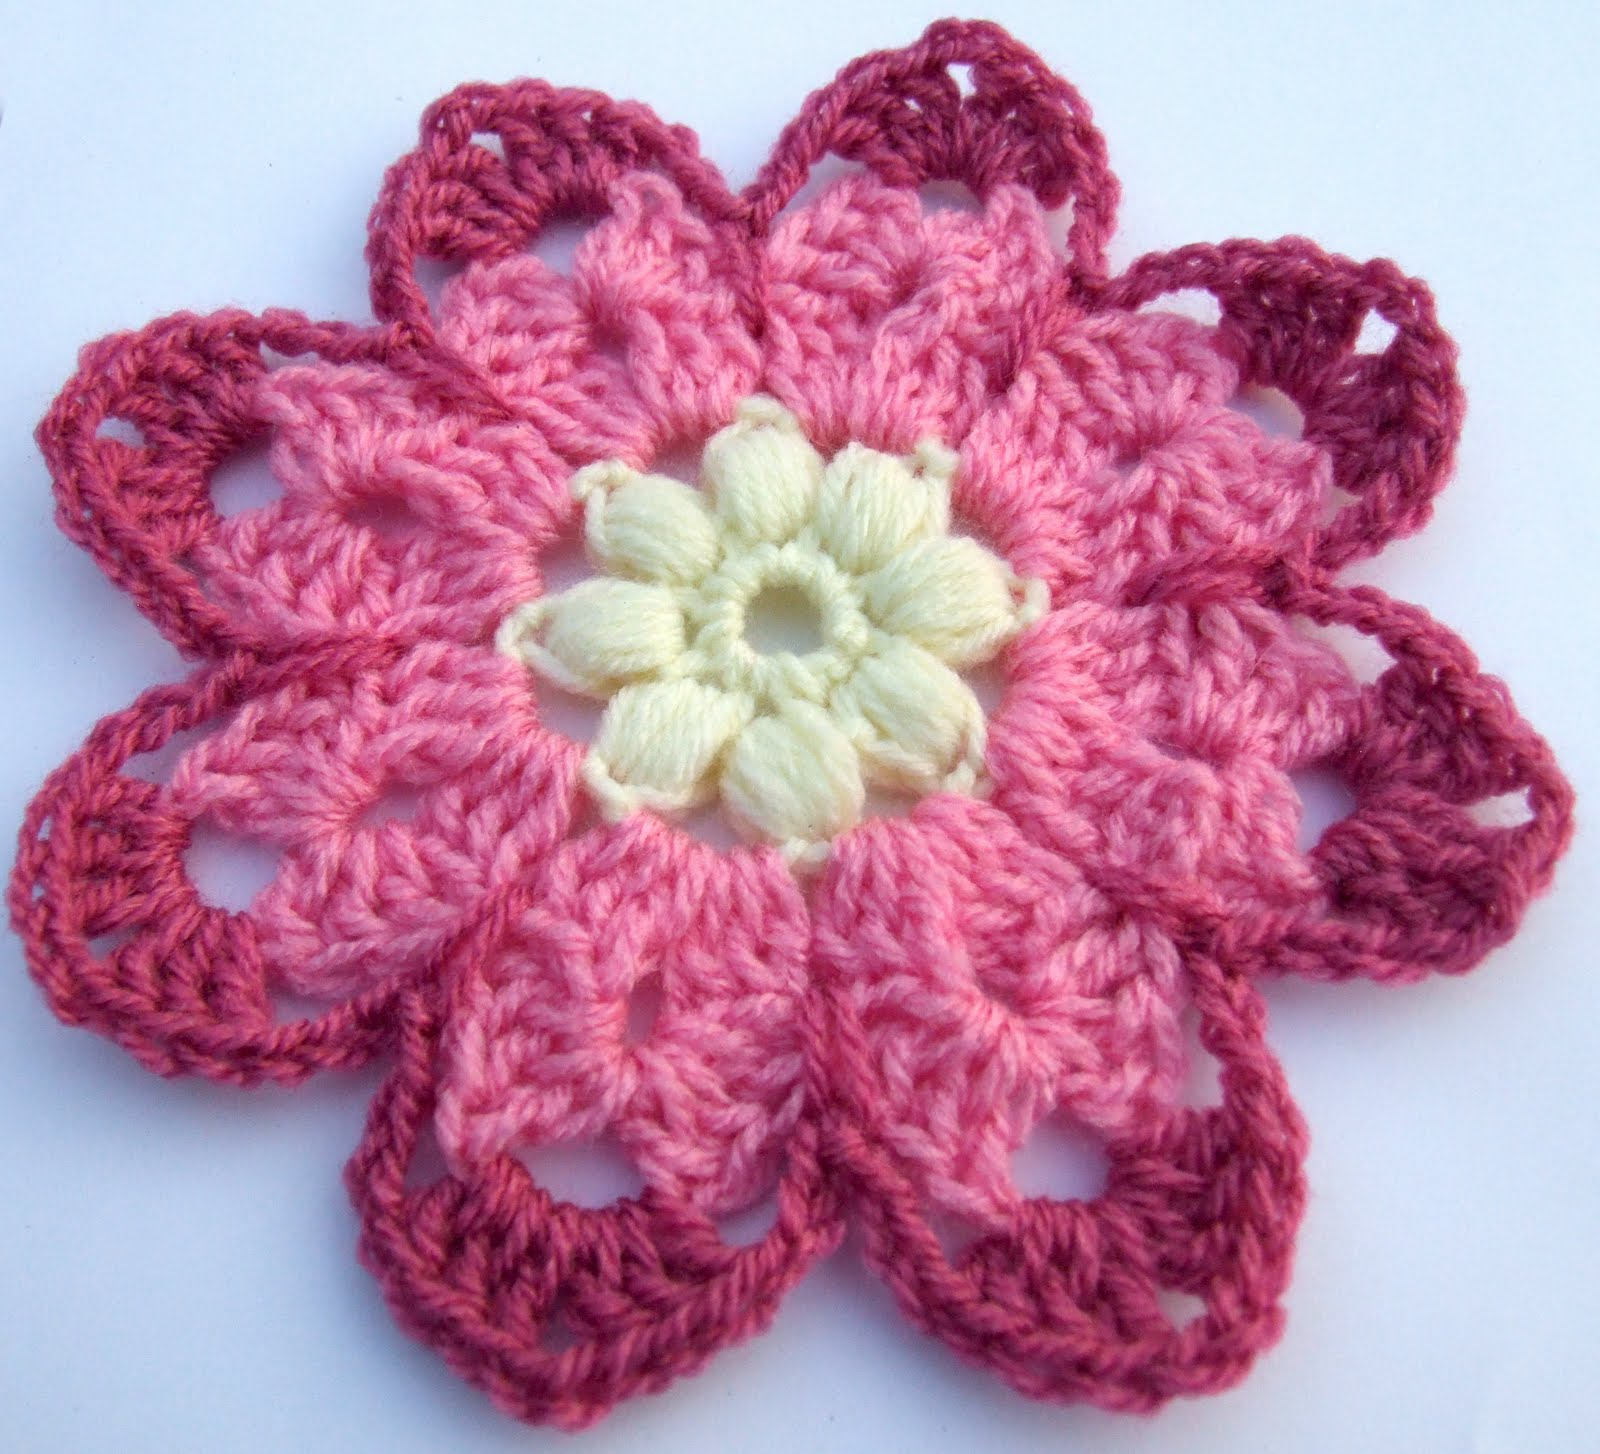 Contemporary Bavarian Crochet Patterns Images - Sewing Pattern for ...